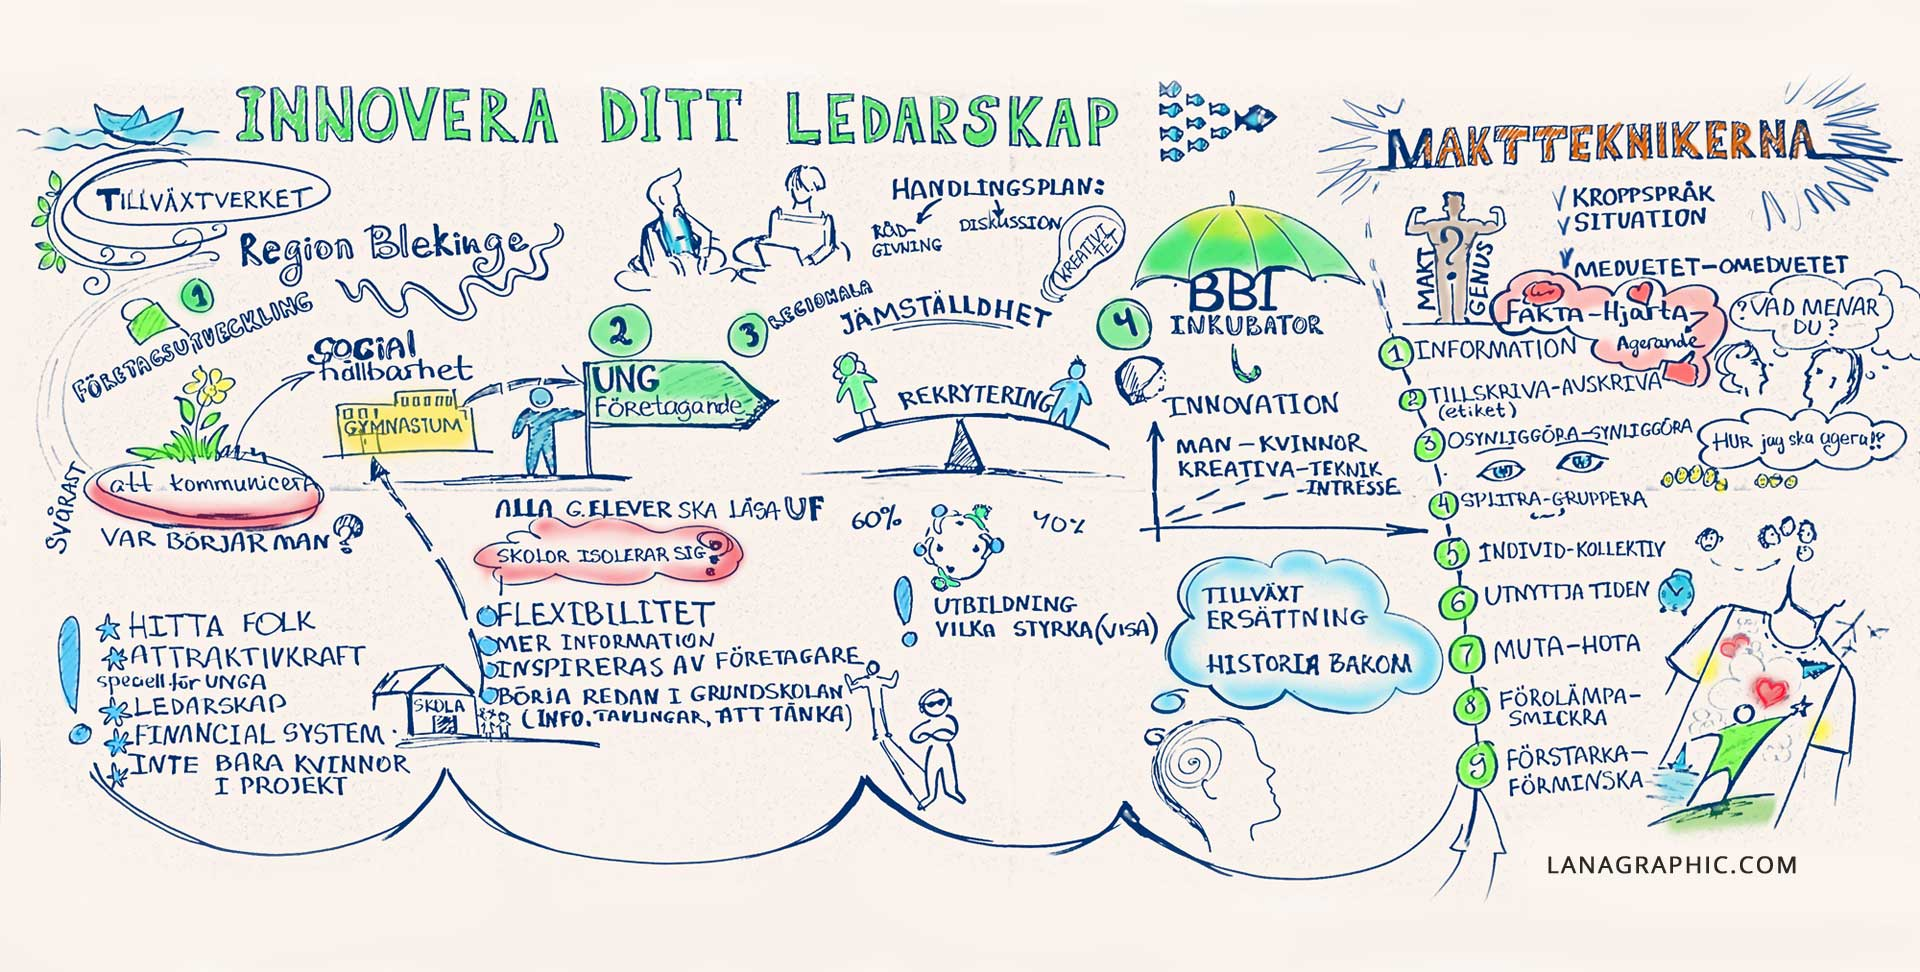 Graphic-Recording-Innovera-ditt-ledarskap-by-Lanagraphic